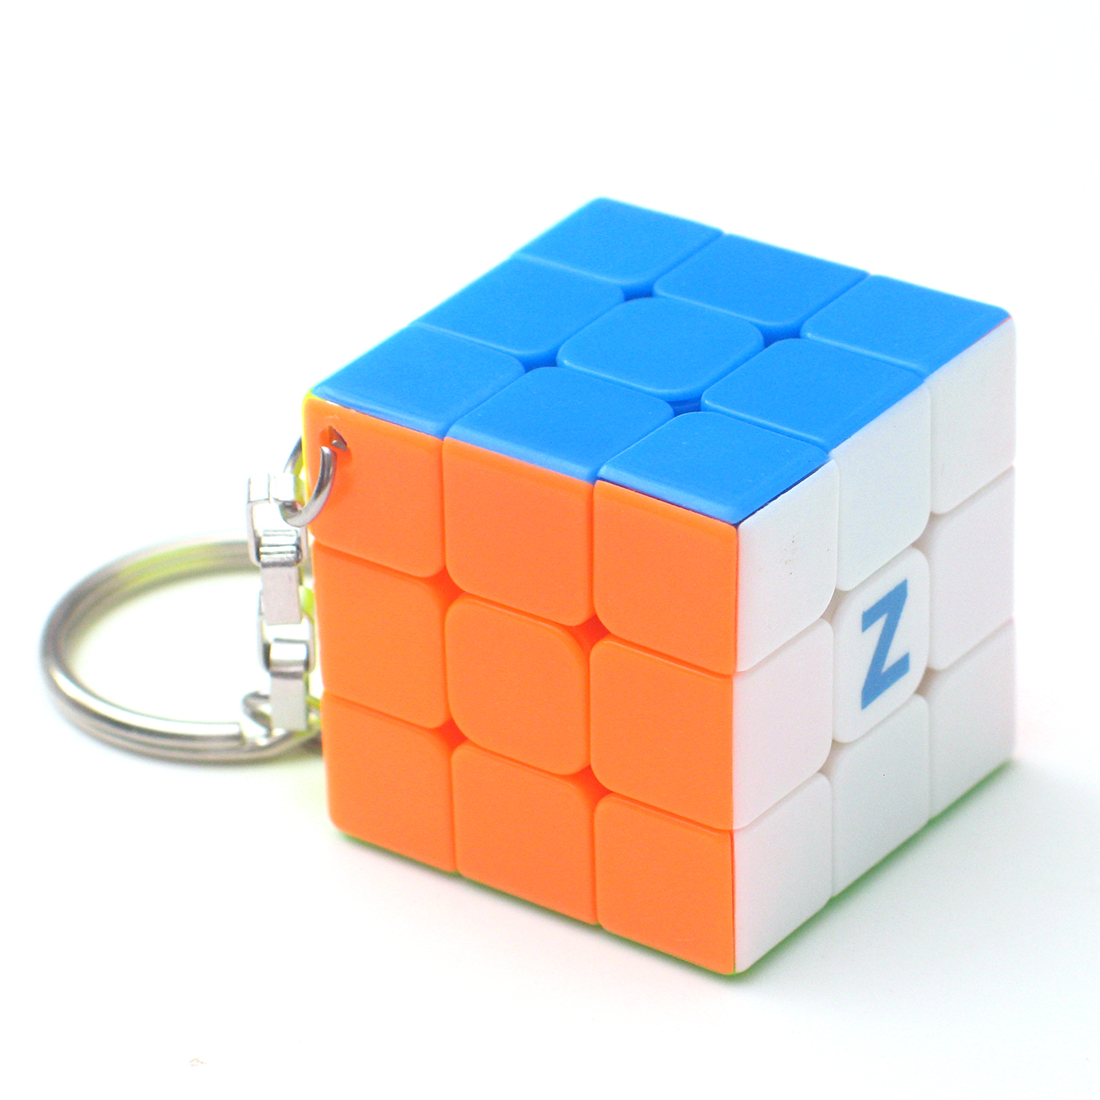 Z Key Chain Mini 3x3 Magic Cube Creative Cube Hang Decorations - Colorful